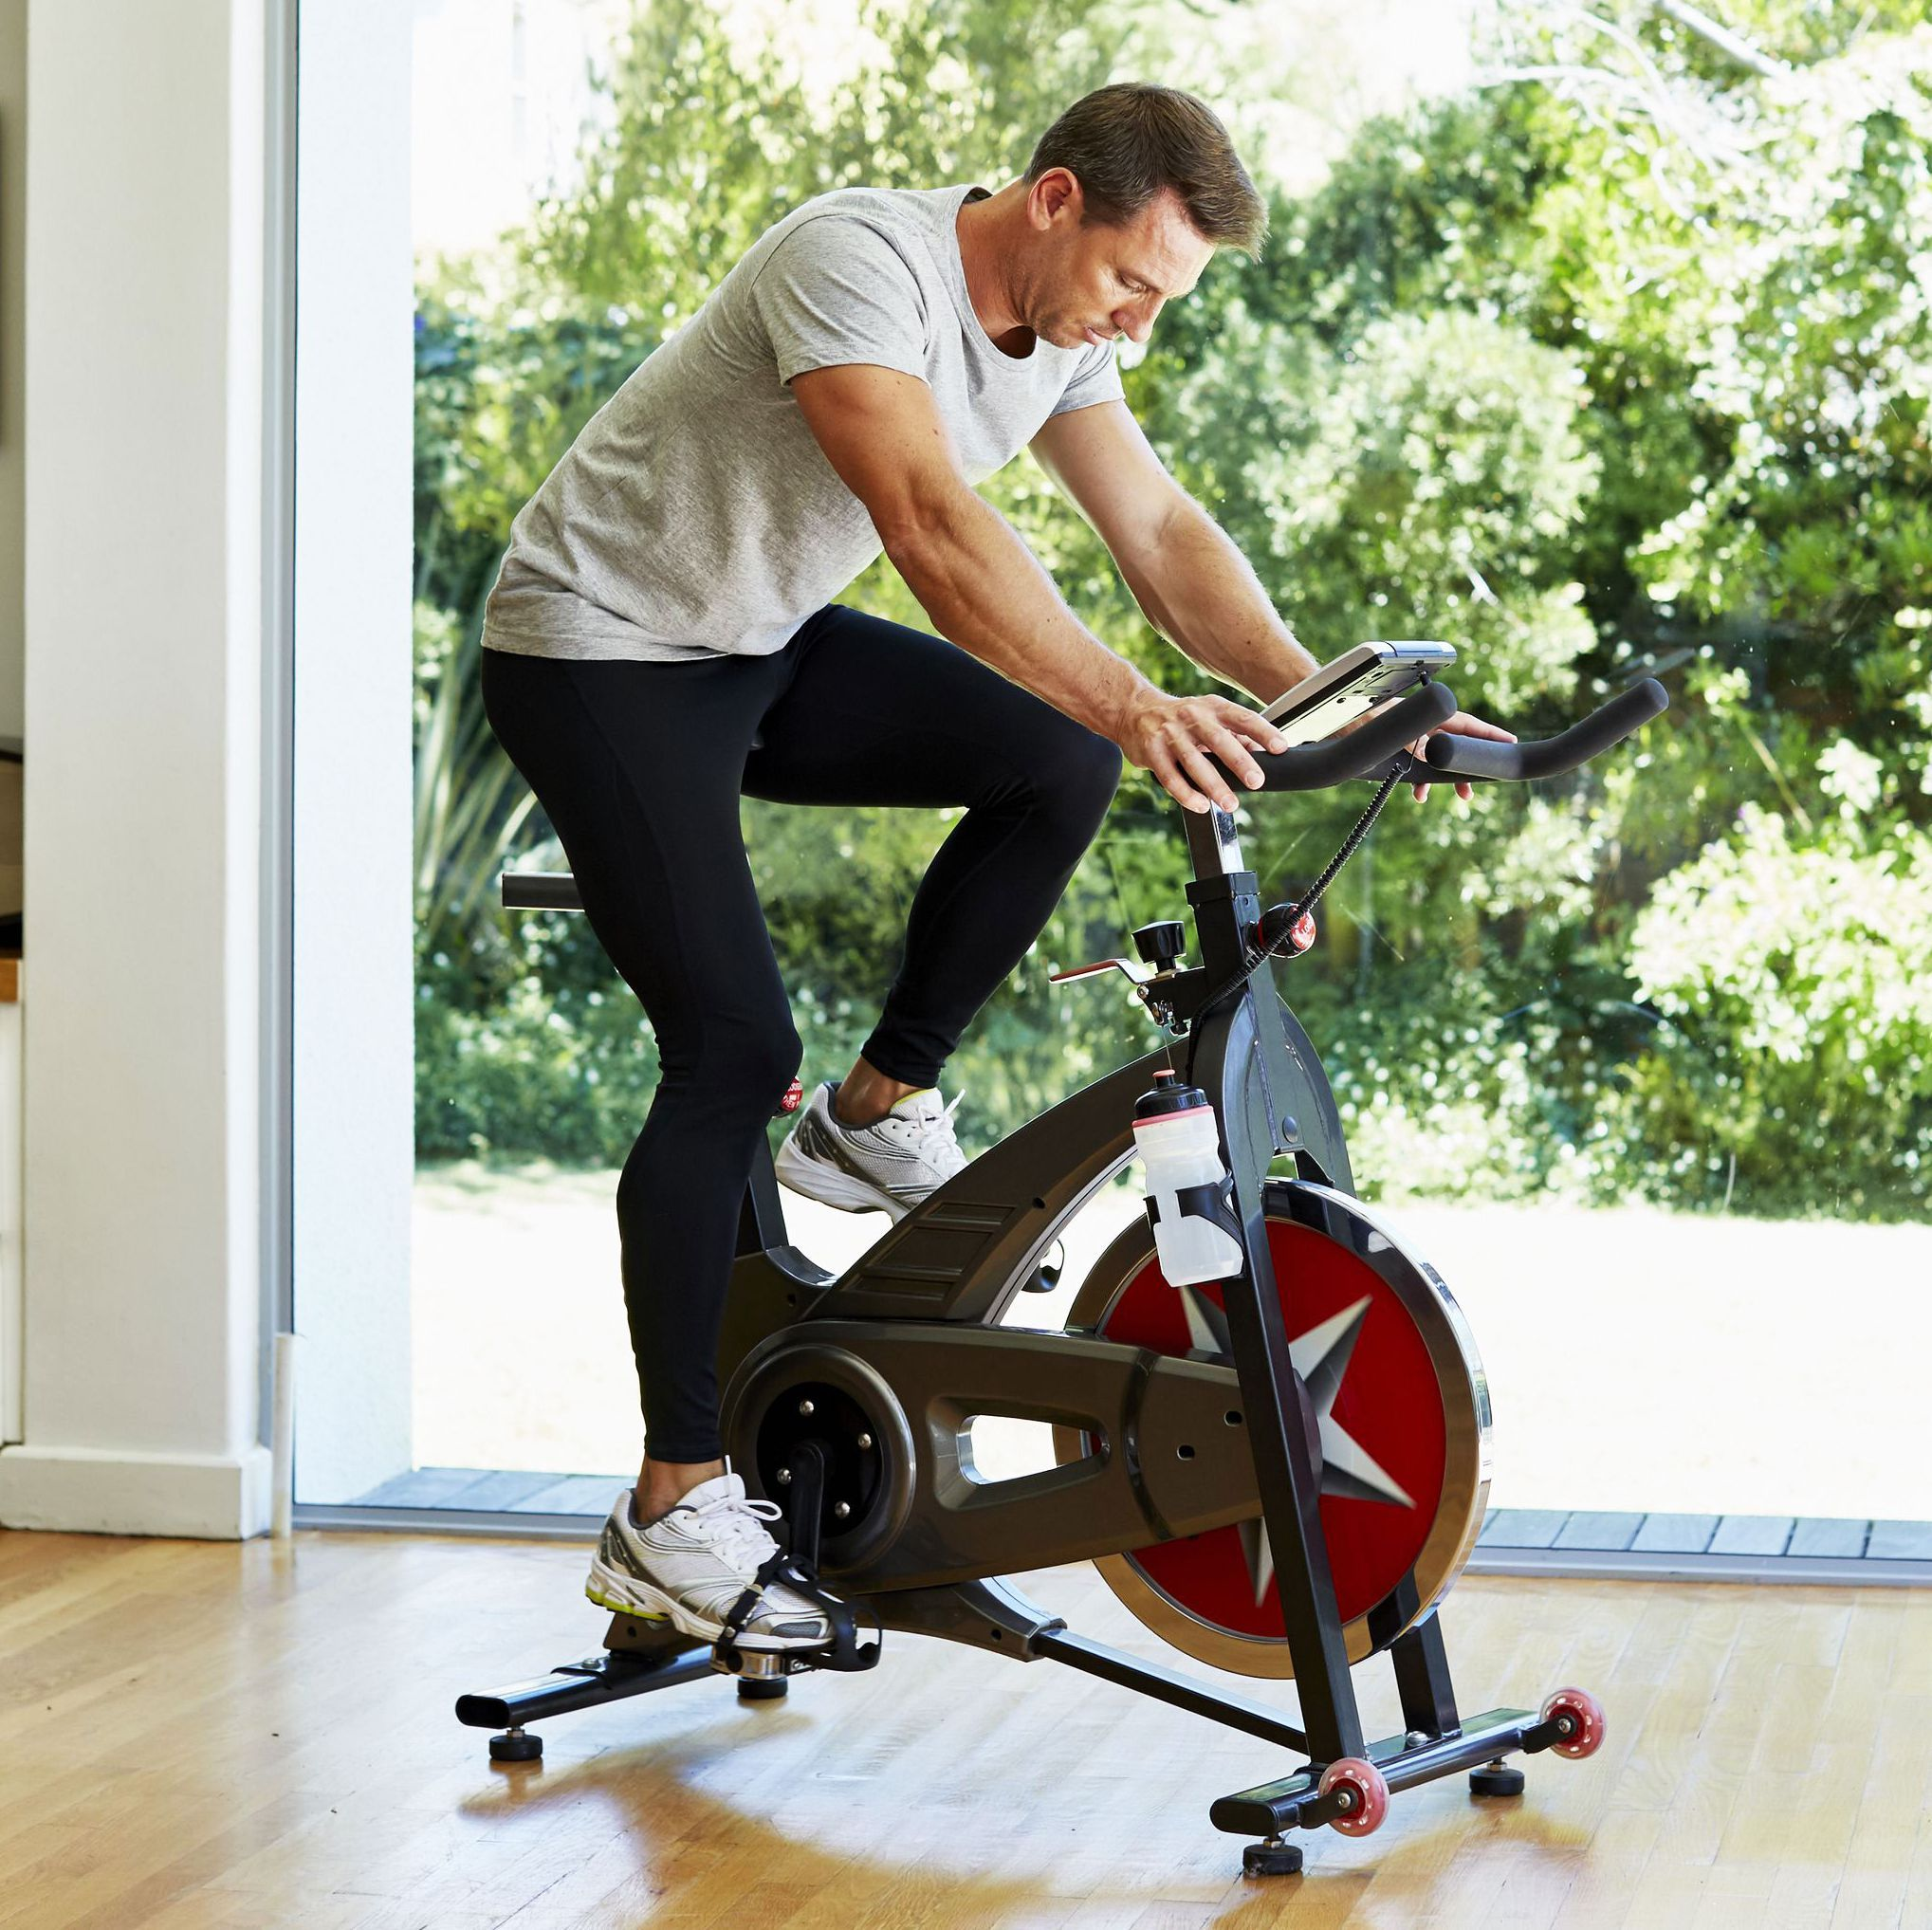 211c159efc0b3 12 Best Exercise Bikes to Spin In Your Home Gym 2019